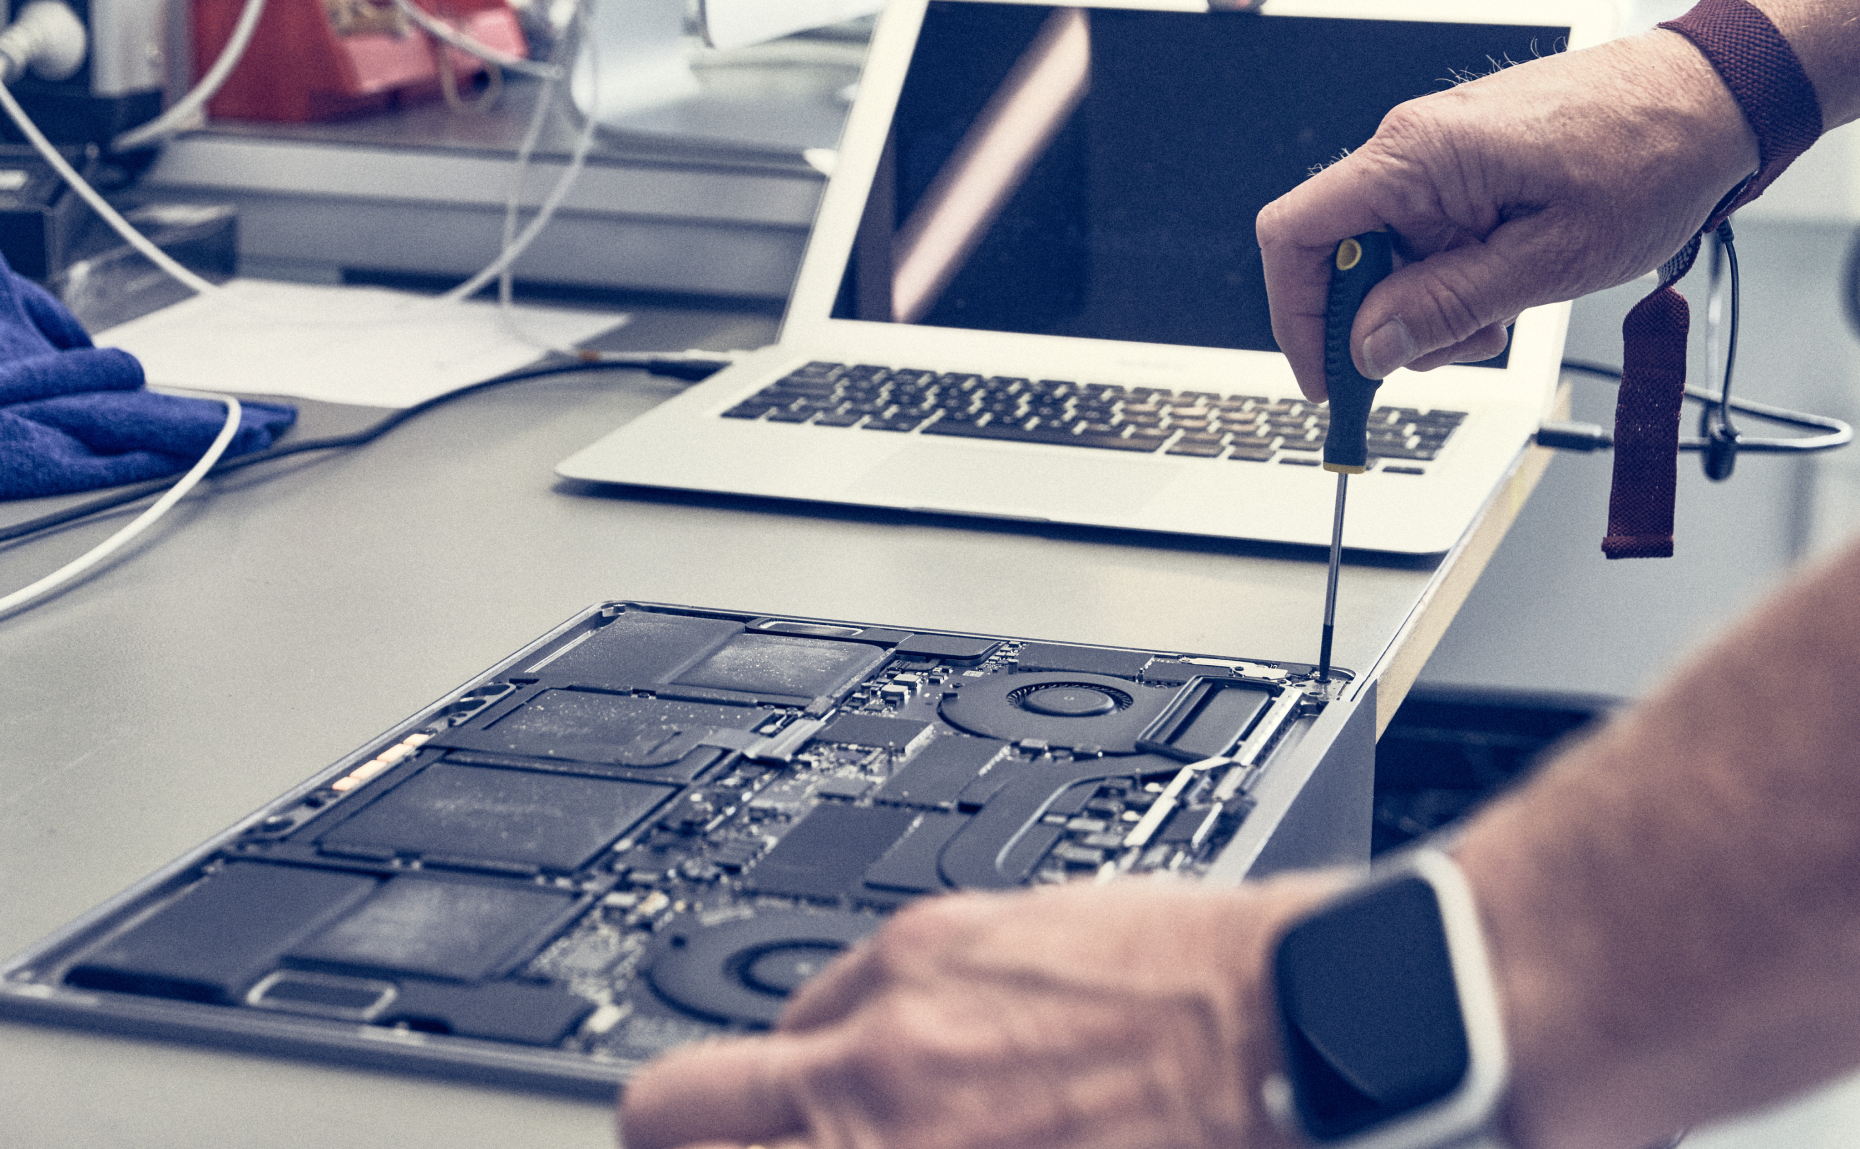 A laptop being repaired. Apple Authorized Service Providers are expected to have the best repair workshops.